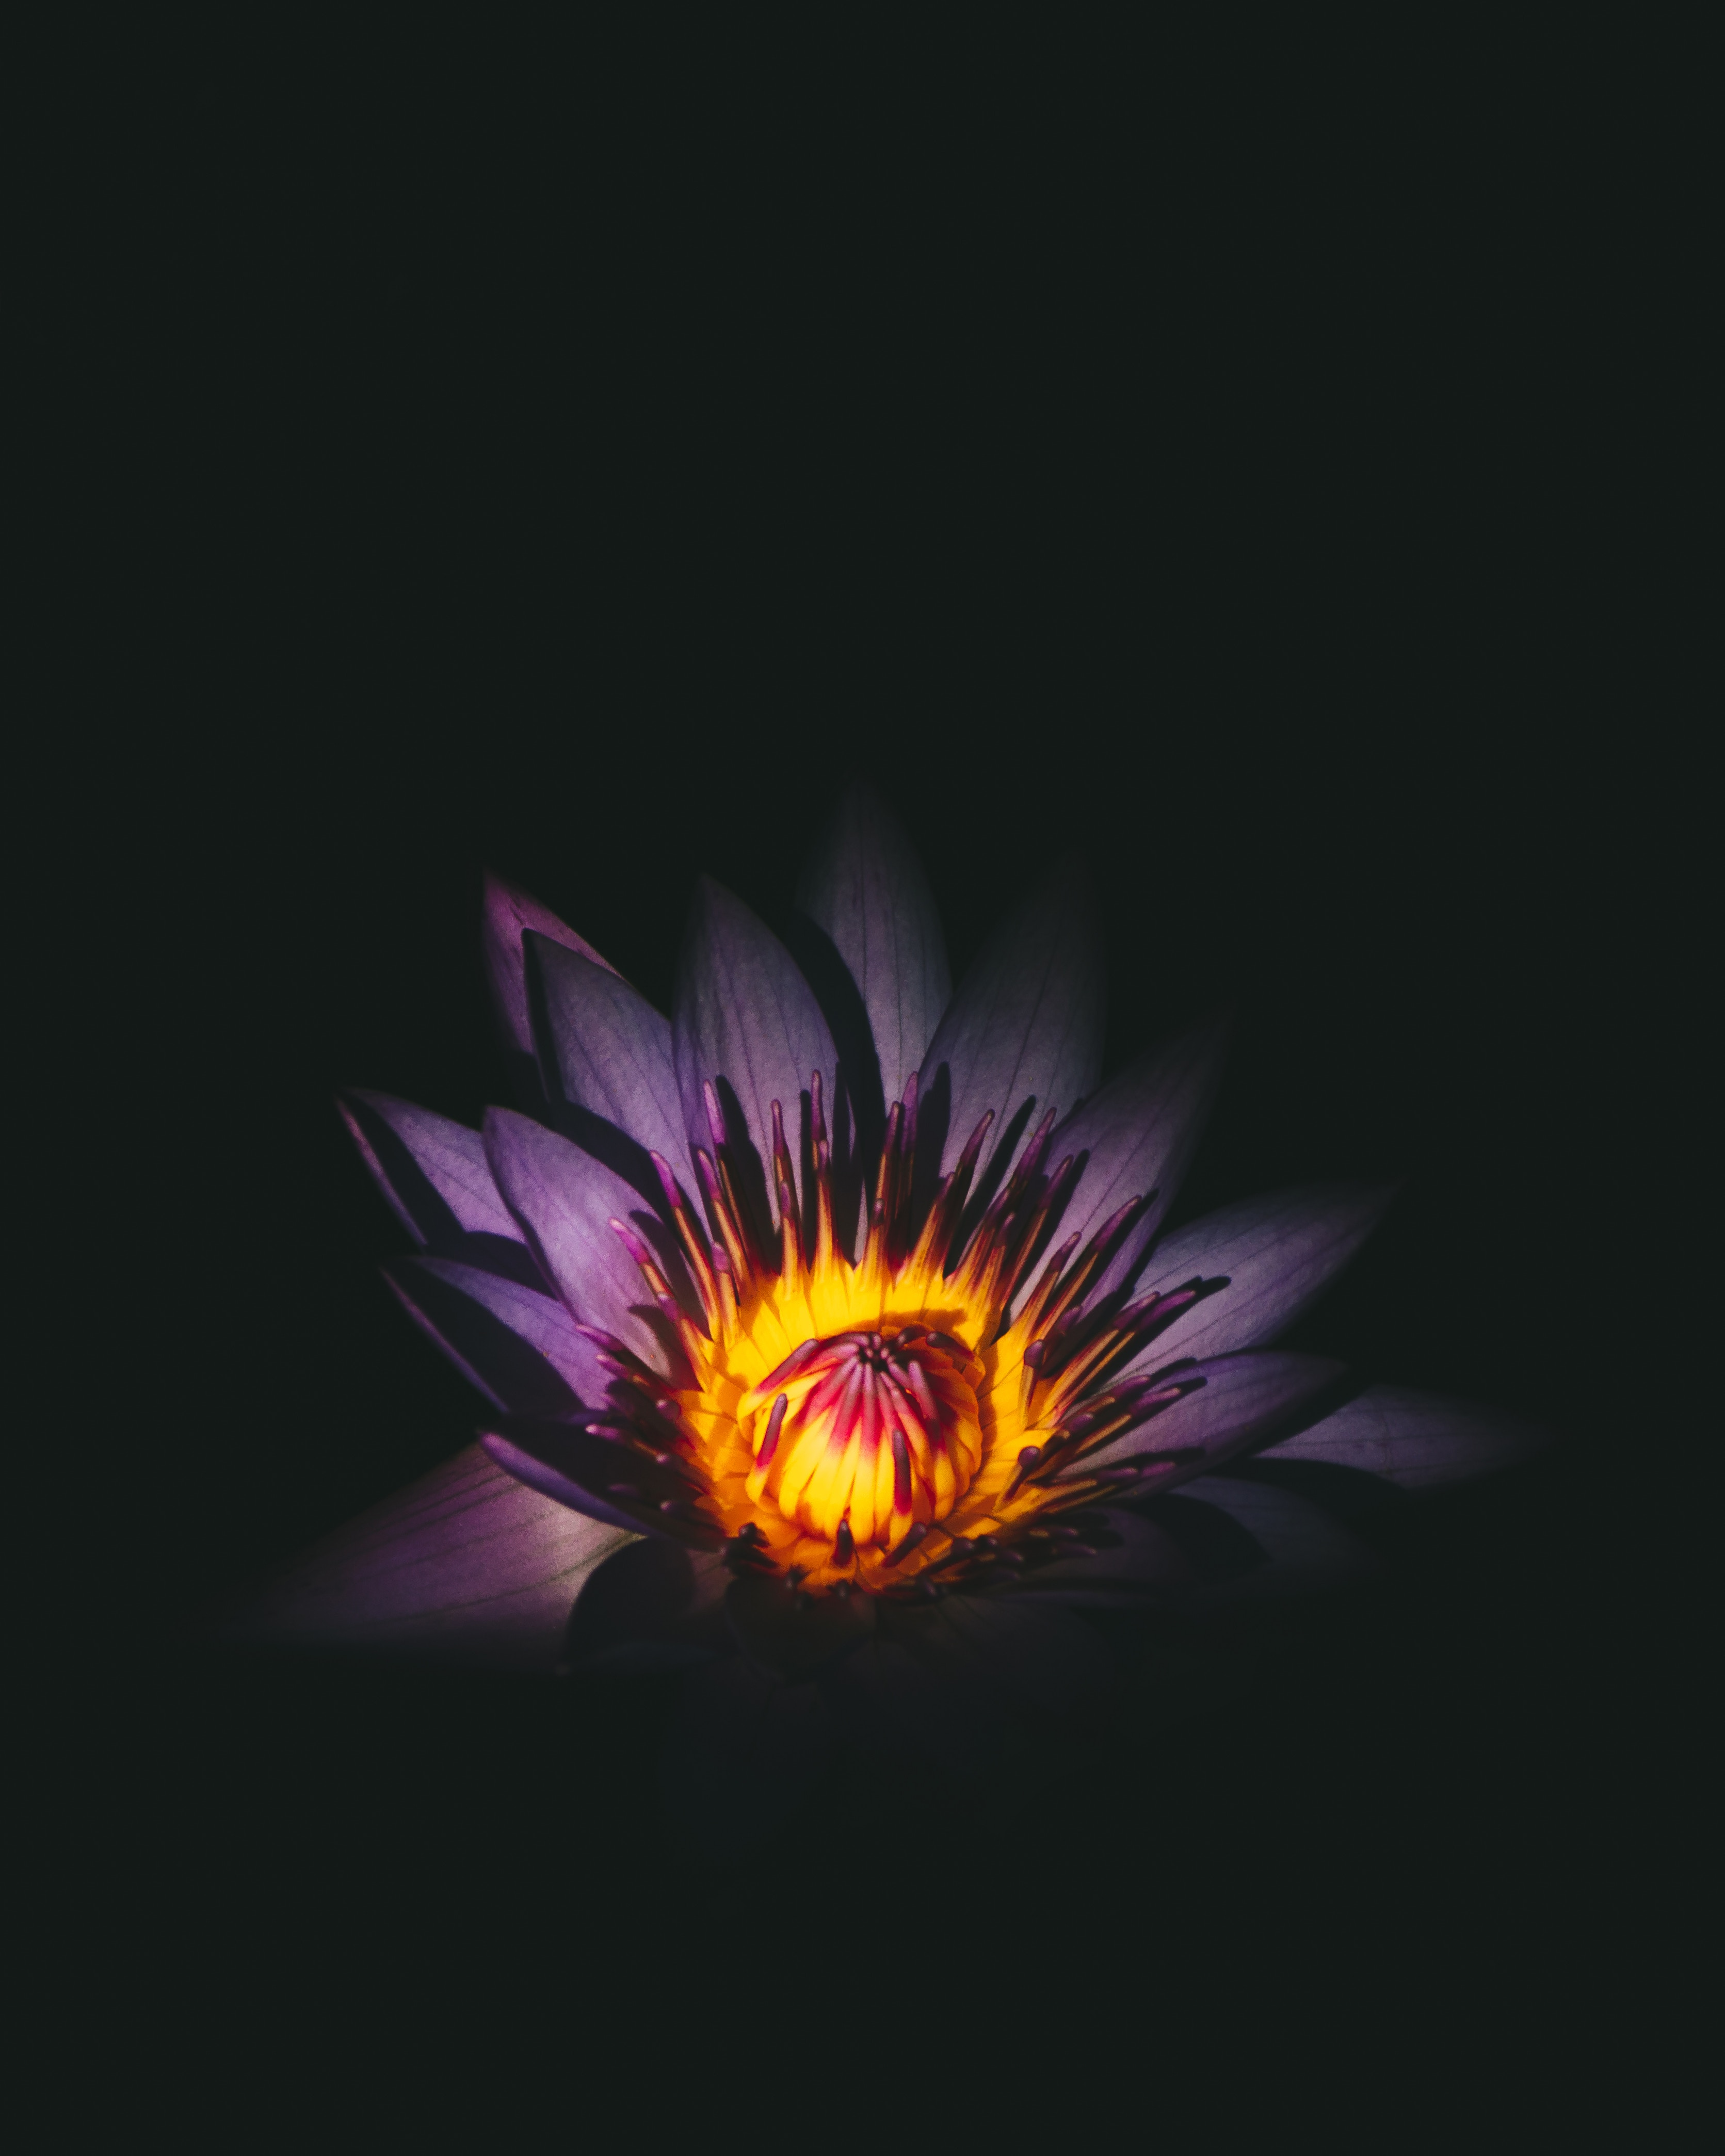 153022 download wallpaper Flowers, Lotus, Violet, Flower, Bud, Purple screensavers and pictures for free